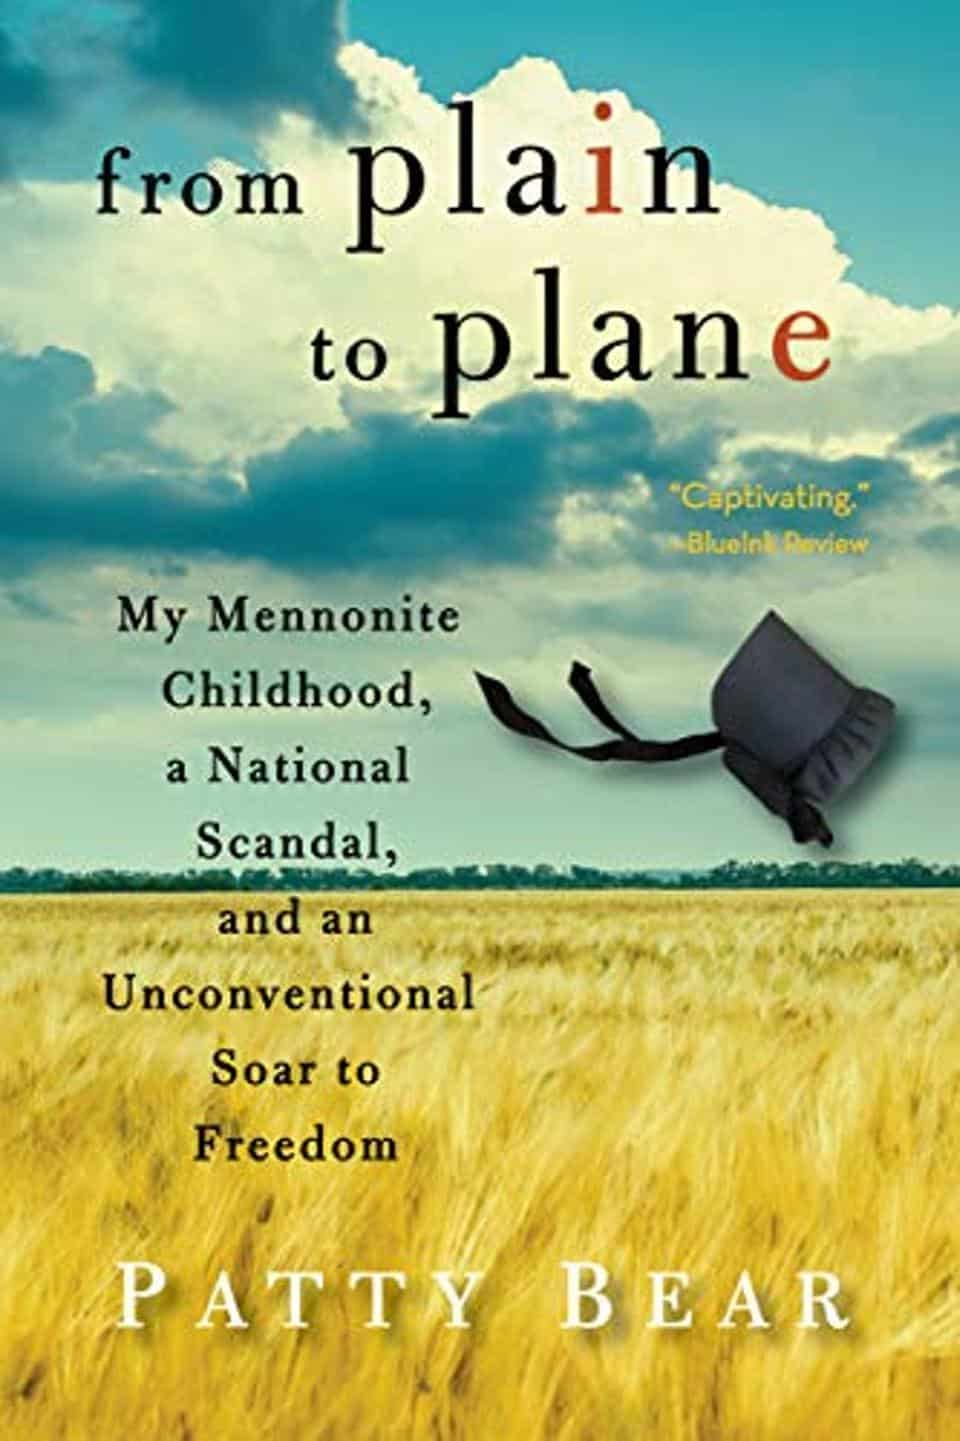 'from plain to plane: My Mennonite Childhood, A National Scandal, and an Unconventional Soar to Freedom'